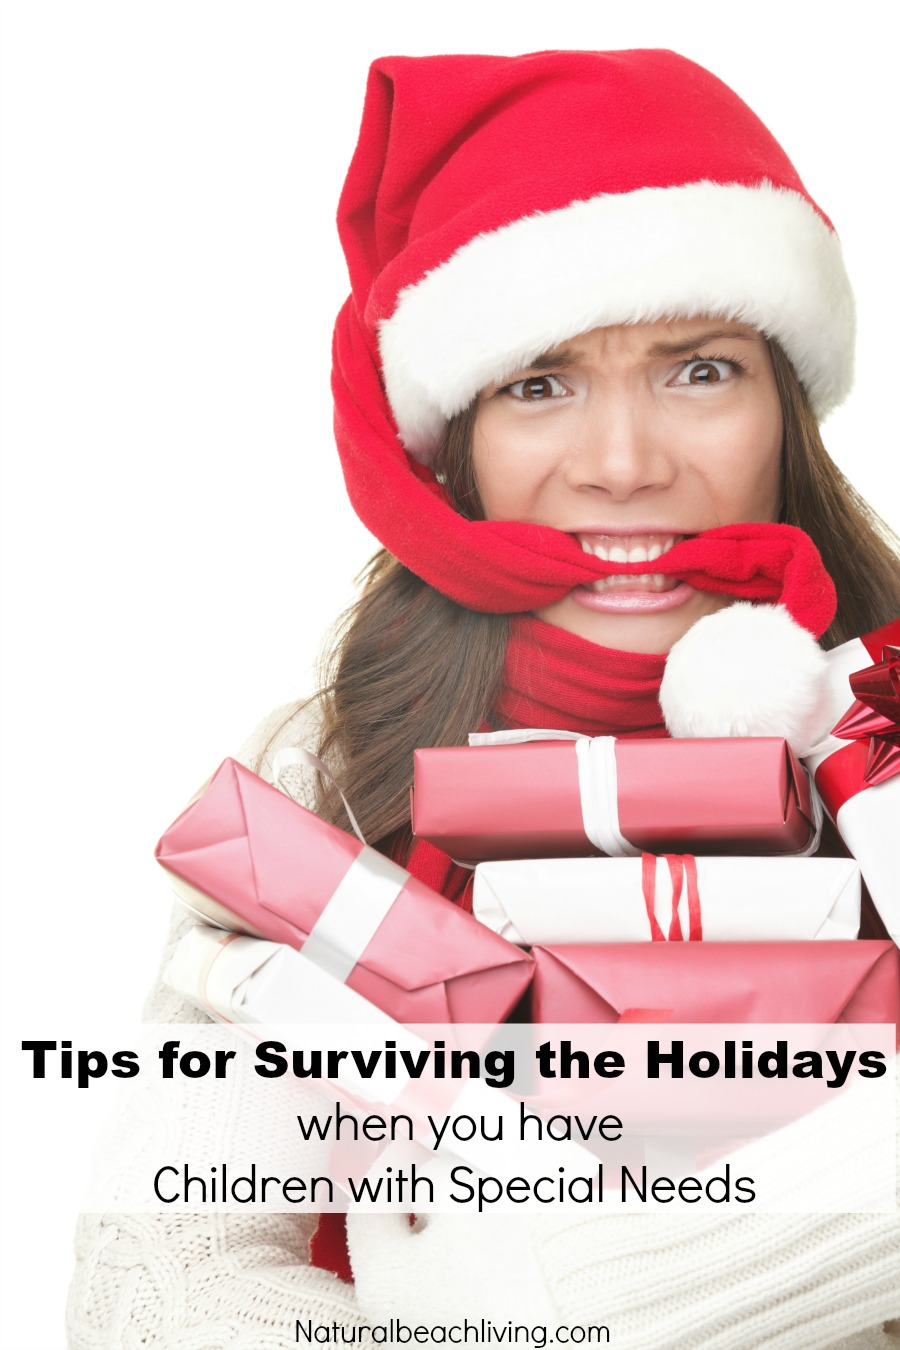 The Best Tip for Having Great Holidays, Surviving the Holidays when you have Children with Special Needs, Kids Anxiety, SPD, Autism Help, Family Fun Tips